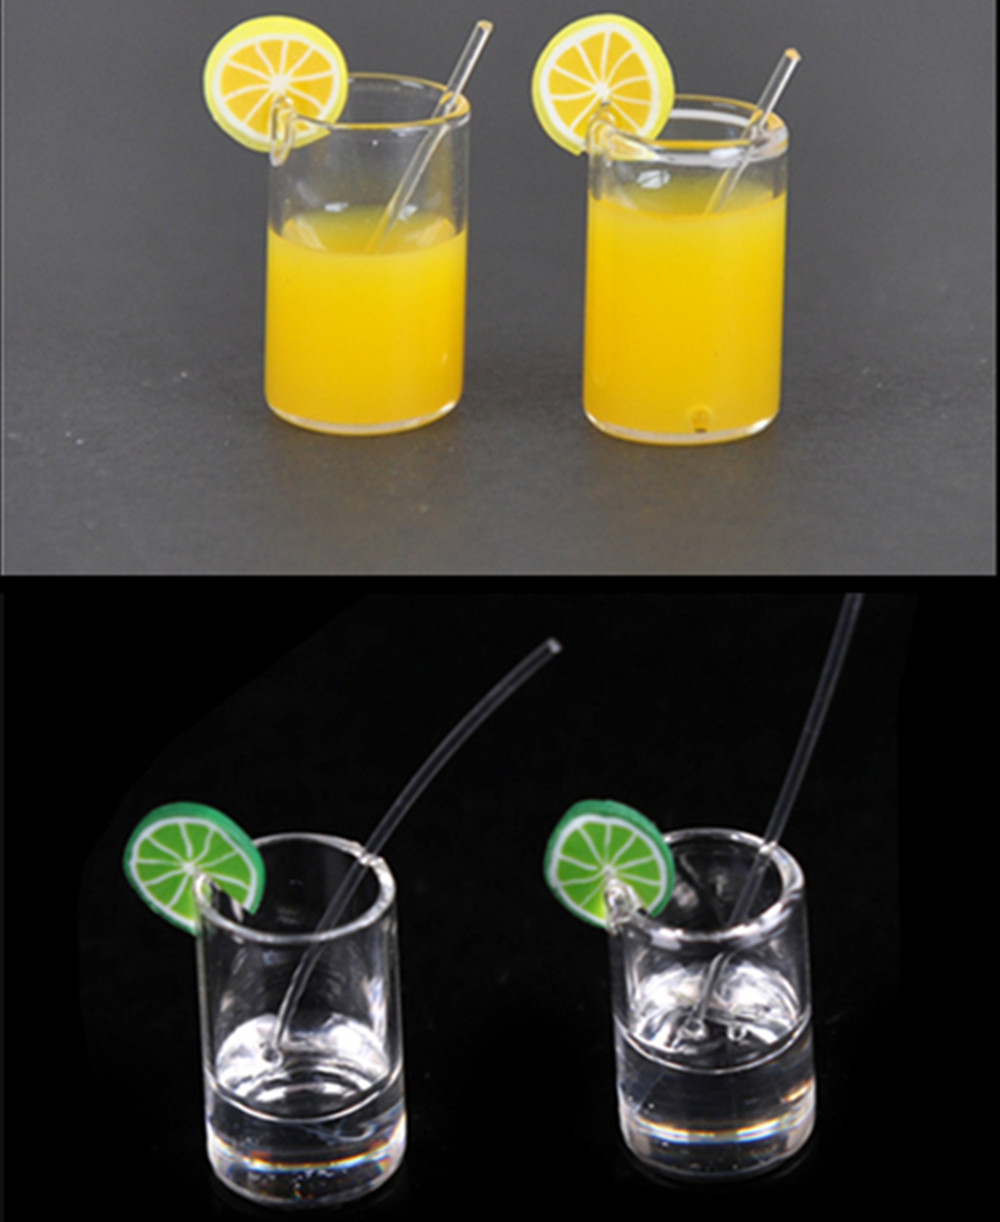 2pcs Dollhouse Lemon Water Cup Dollhouse Mini Lemon Water Cup Miniature Dollhouse Accessories Cups Furniture Toy